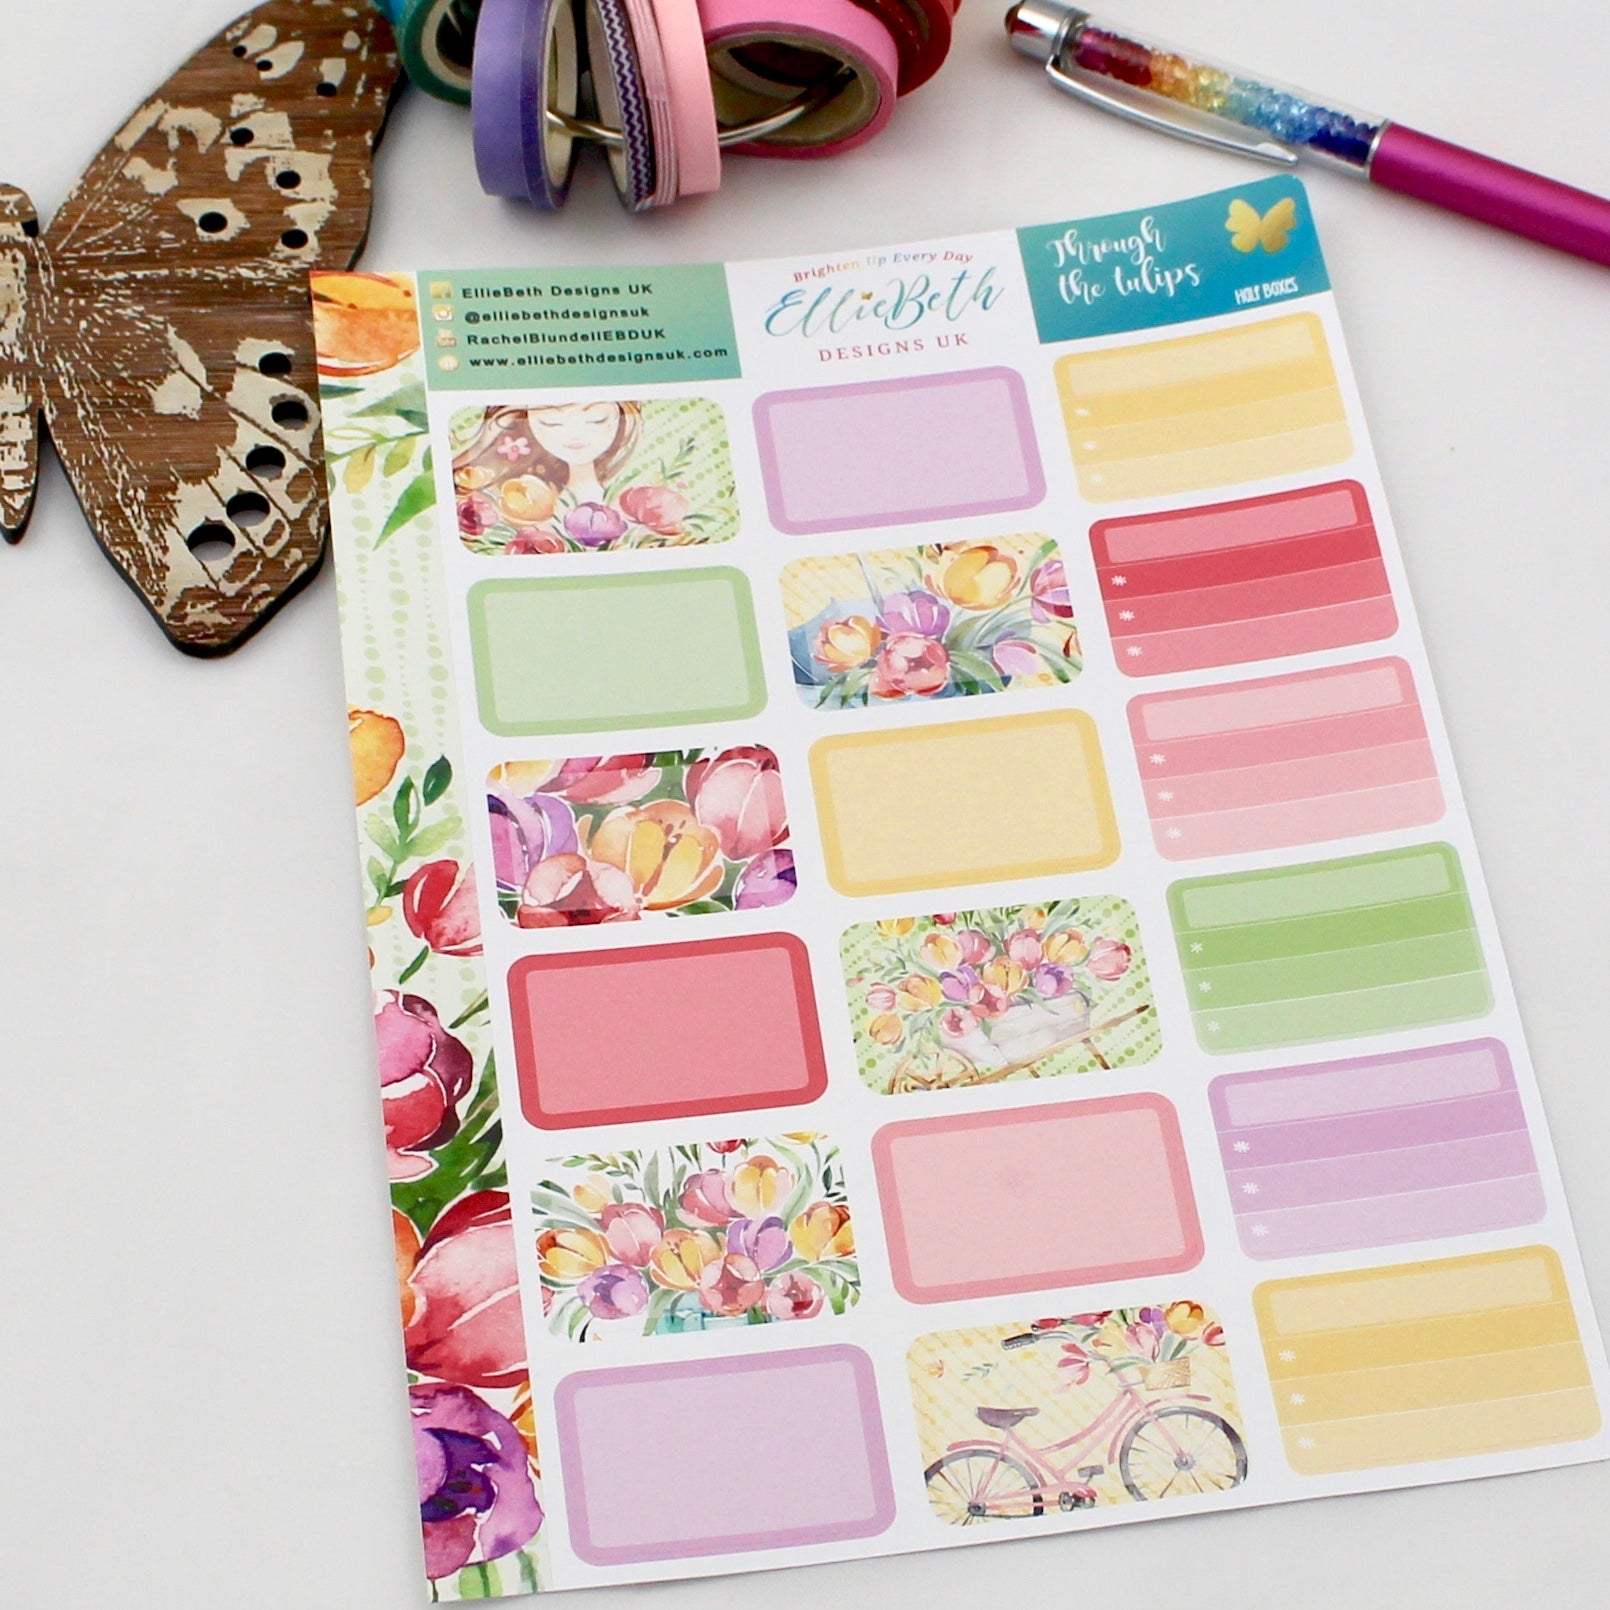 'Through the Tulips' - Half Boxes -  A5 binder ready planner stickers - EllieBeth Designs UK